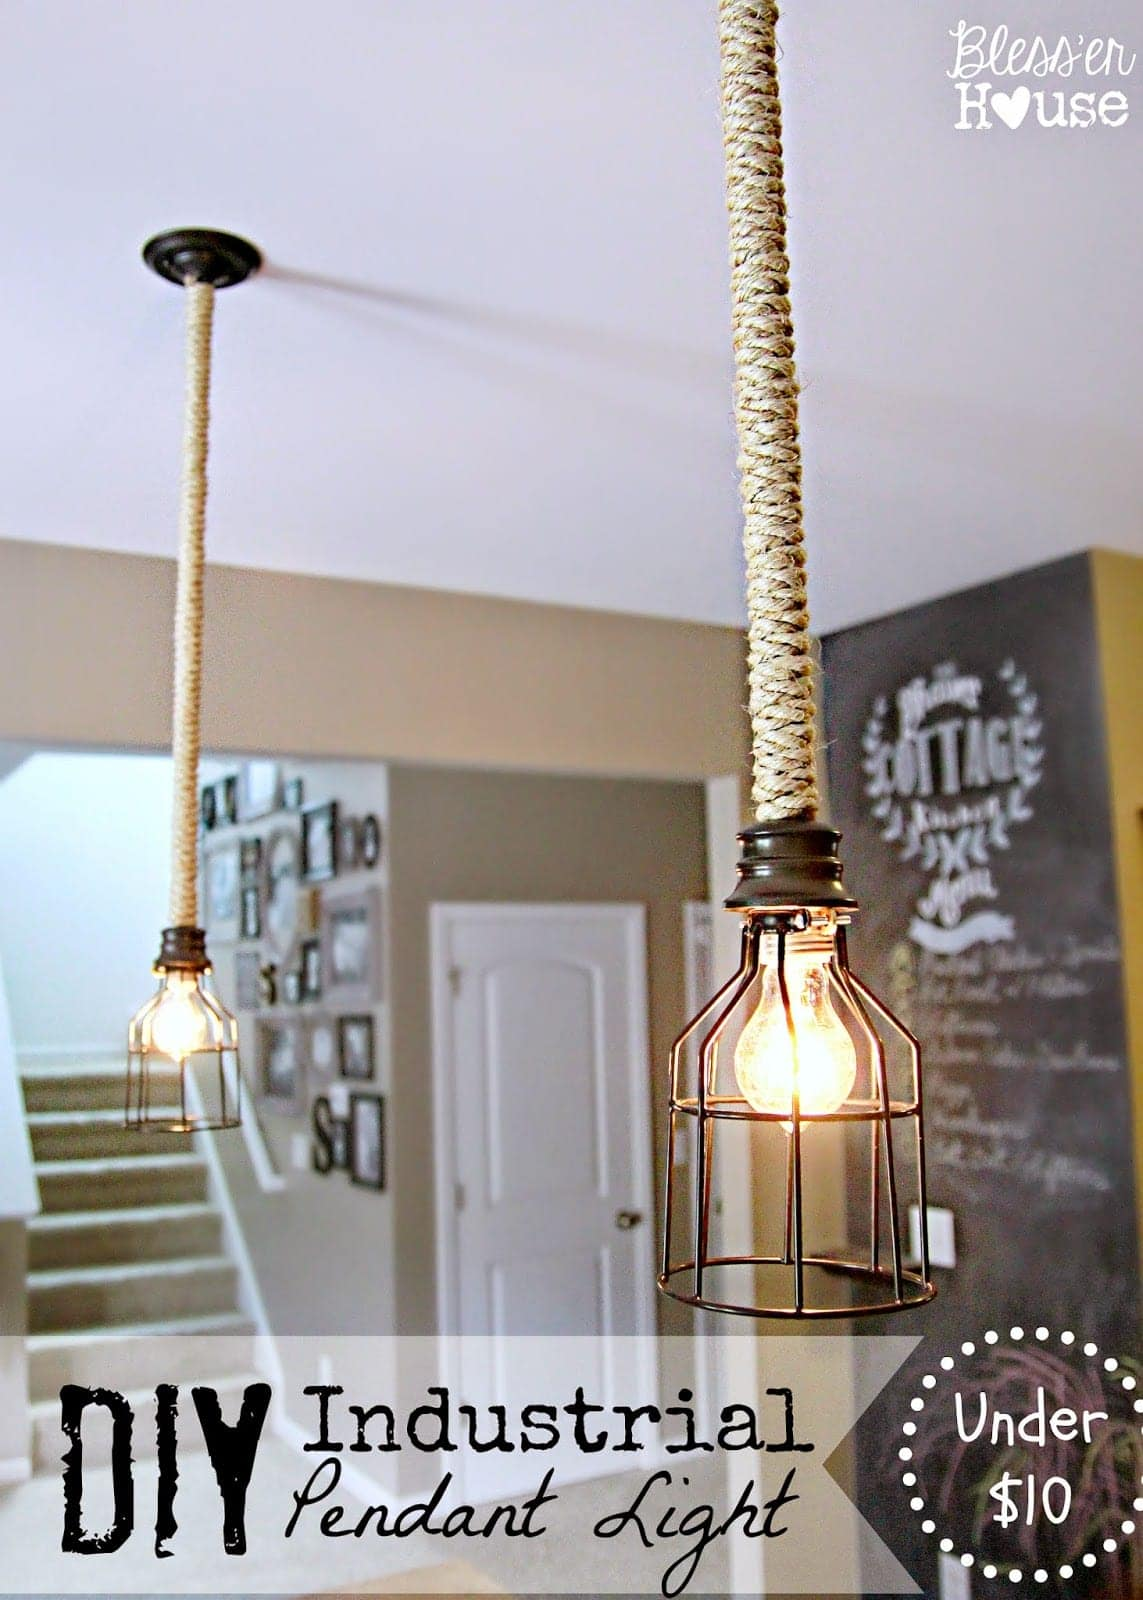 Diy industrial pendant light for under 10 blesser house